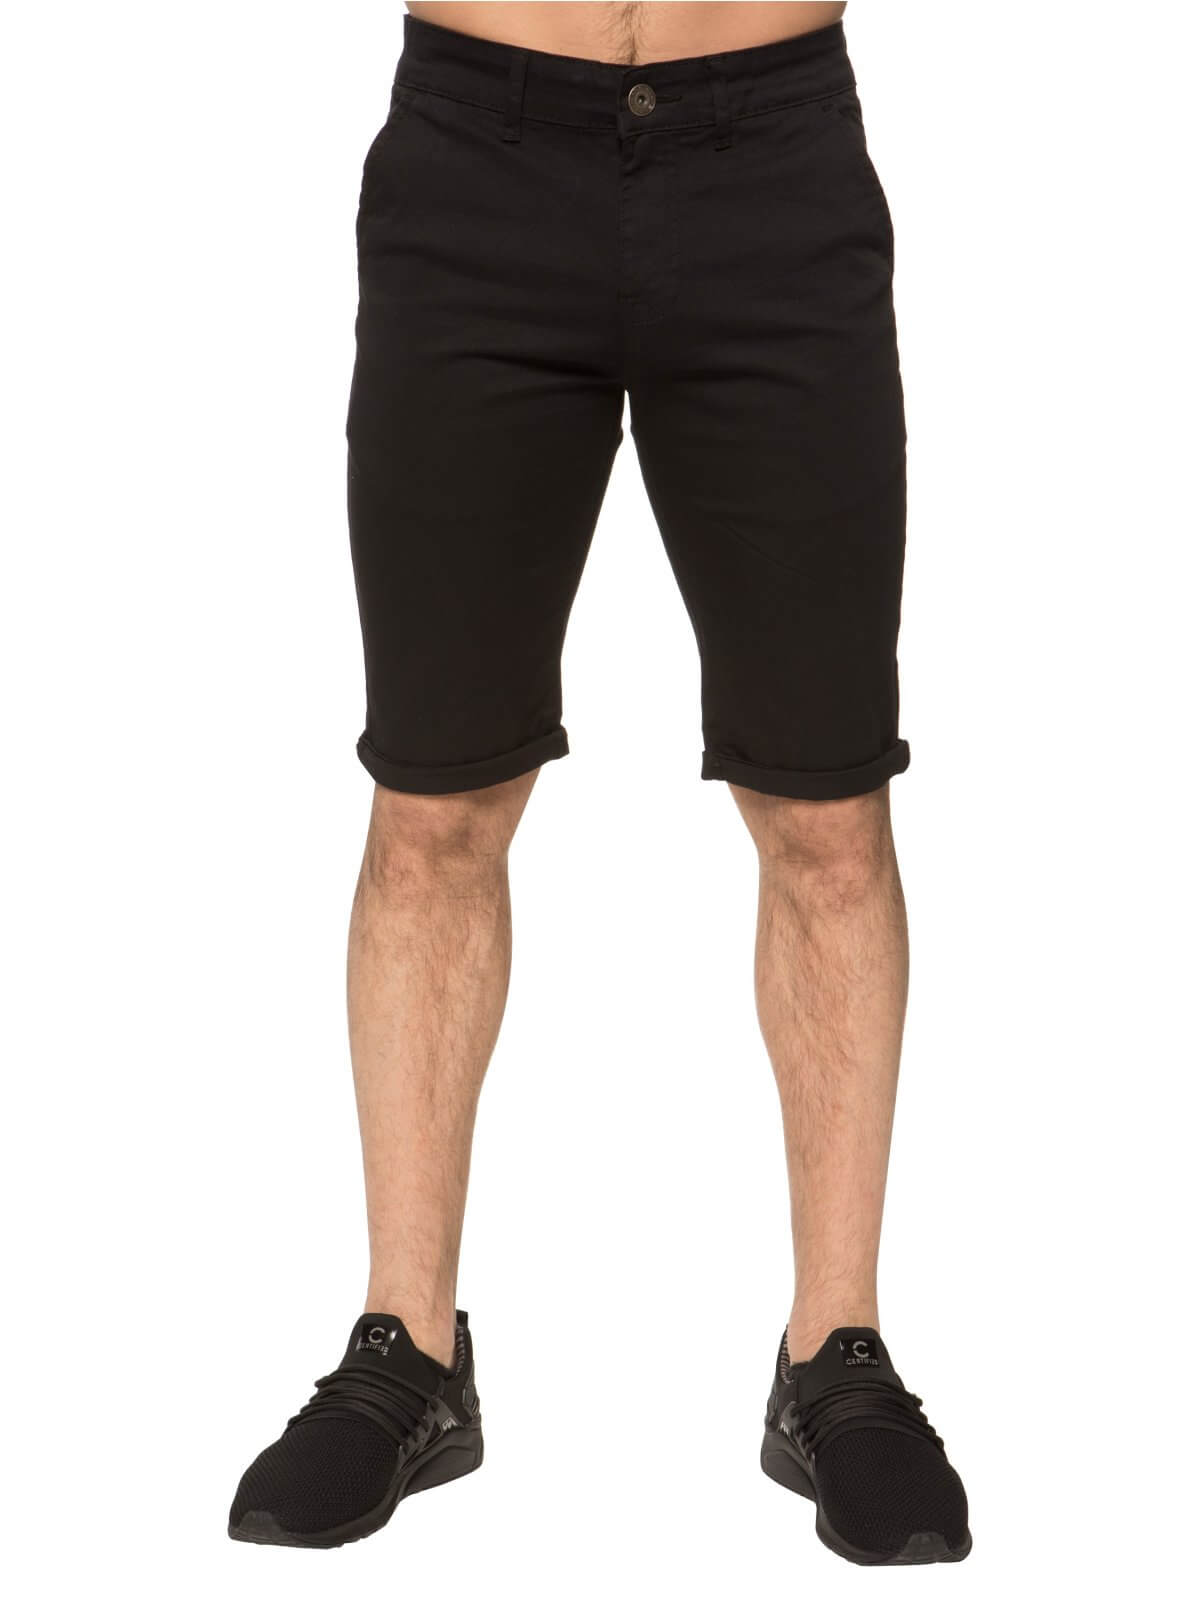 Mens Black Casual Chino Shorts | Enzo Designer Menswear